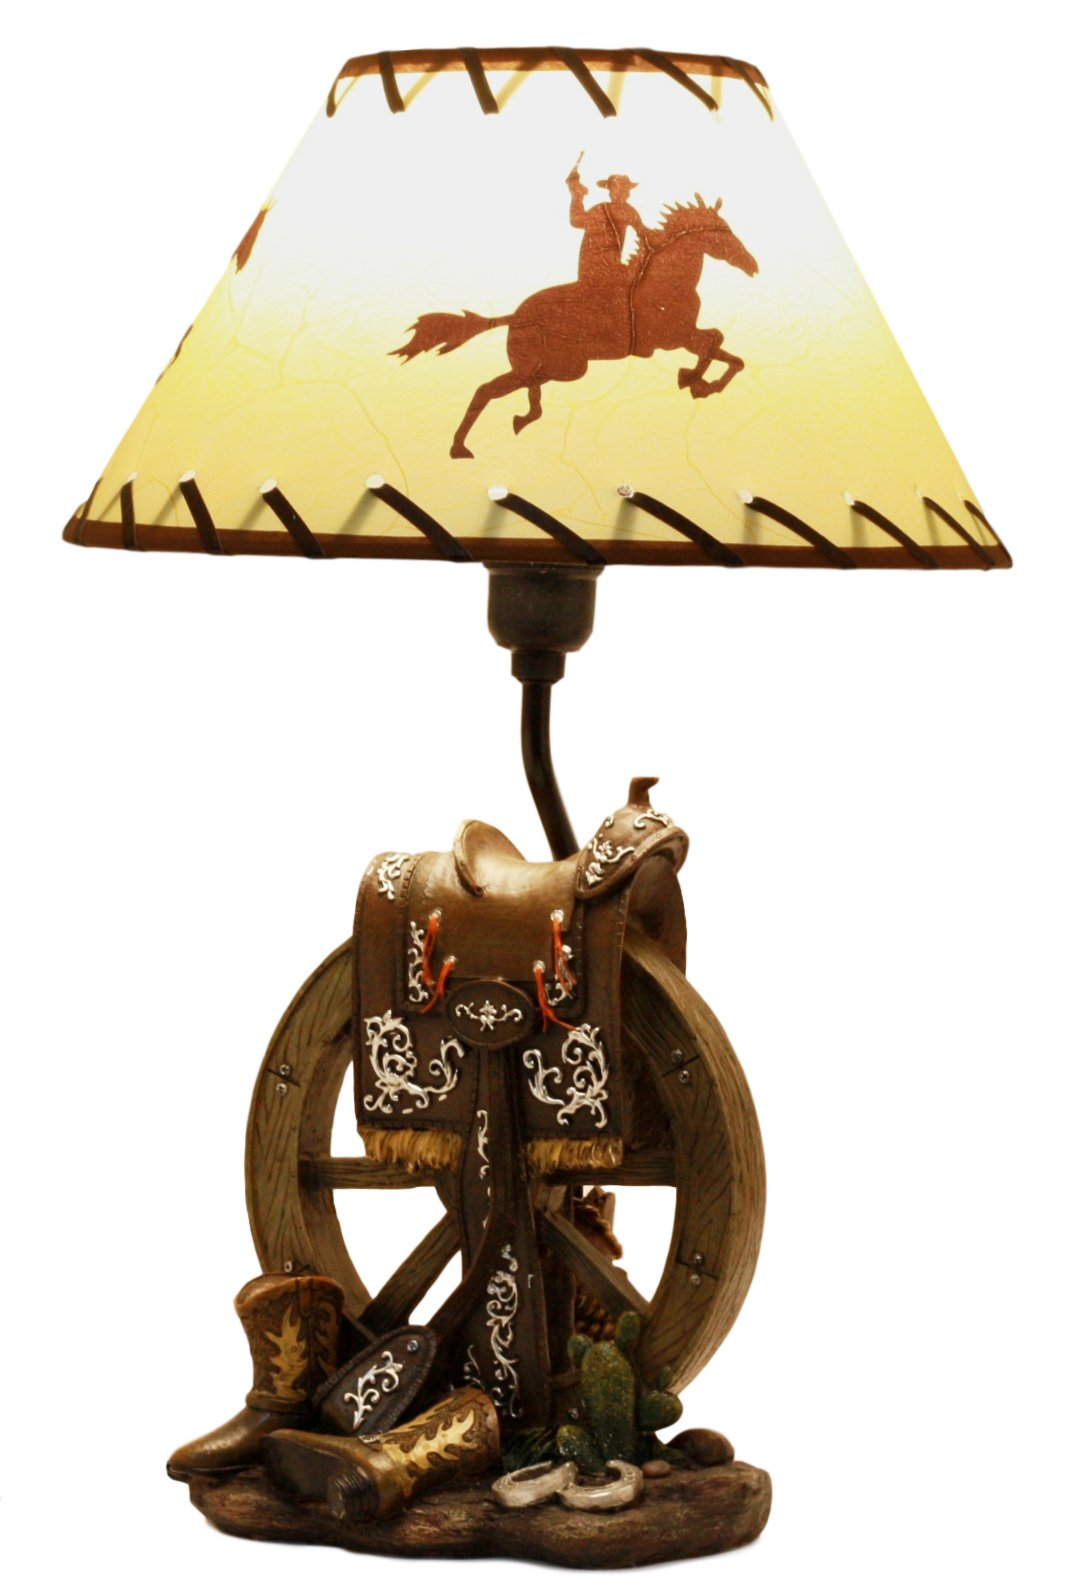 Ebros Horse Saddle Set On Vintage Wagon Wheel With Cowboy Boots Desktop Table Lamp 18.25''Tall Country Cowboy Western Home Decor